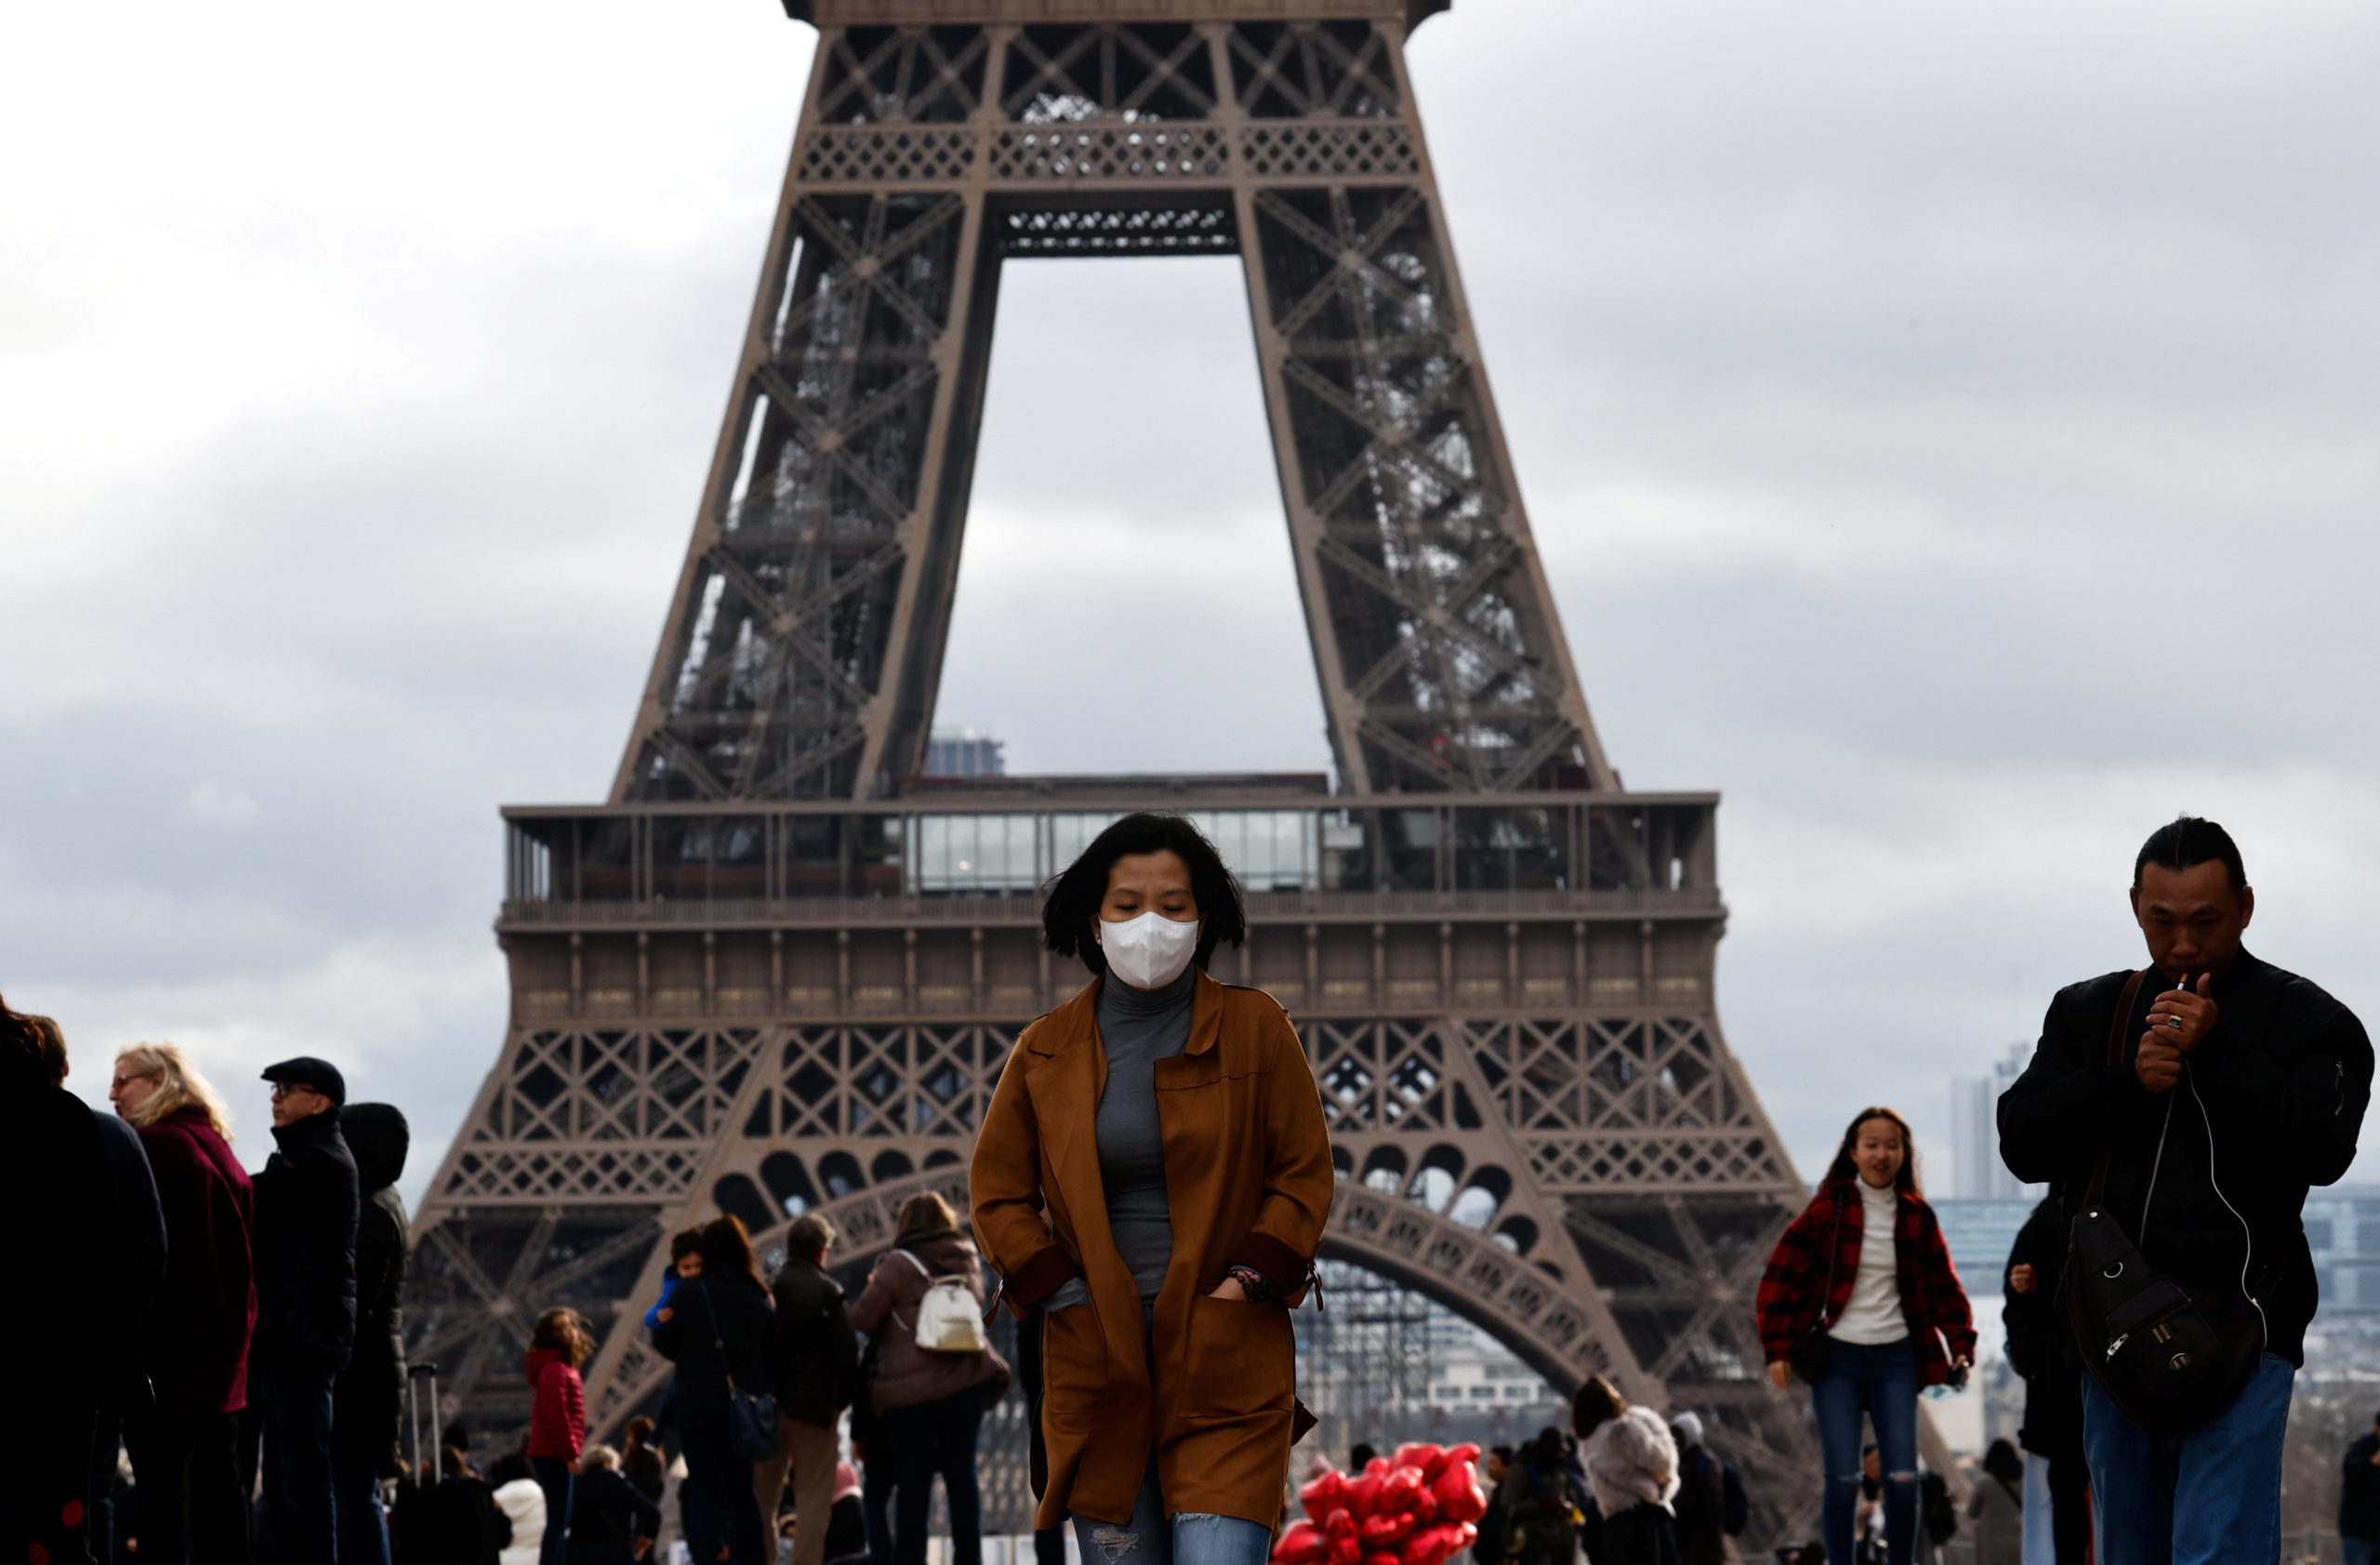 A woman wears a protective mask in light of the coronavirus outbreak in China as she walks at the Trocadero esplanade in front of the Eiffel Tower in Paris, France. (Photo March 2020/REUTERS/Gonzalo Fuentes)